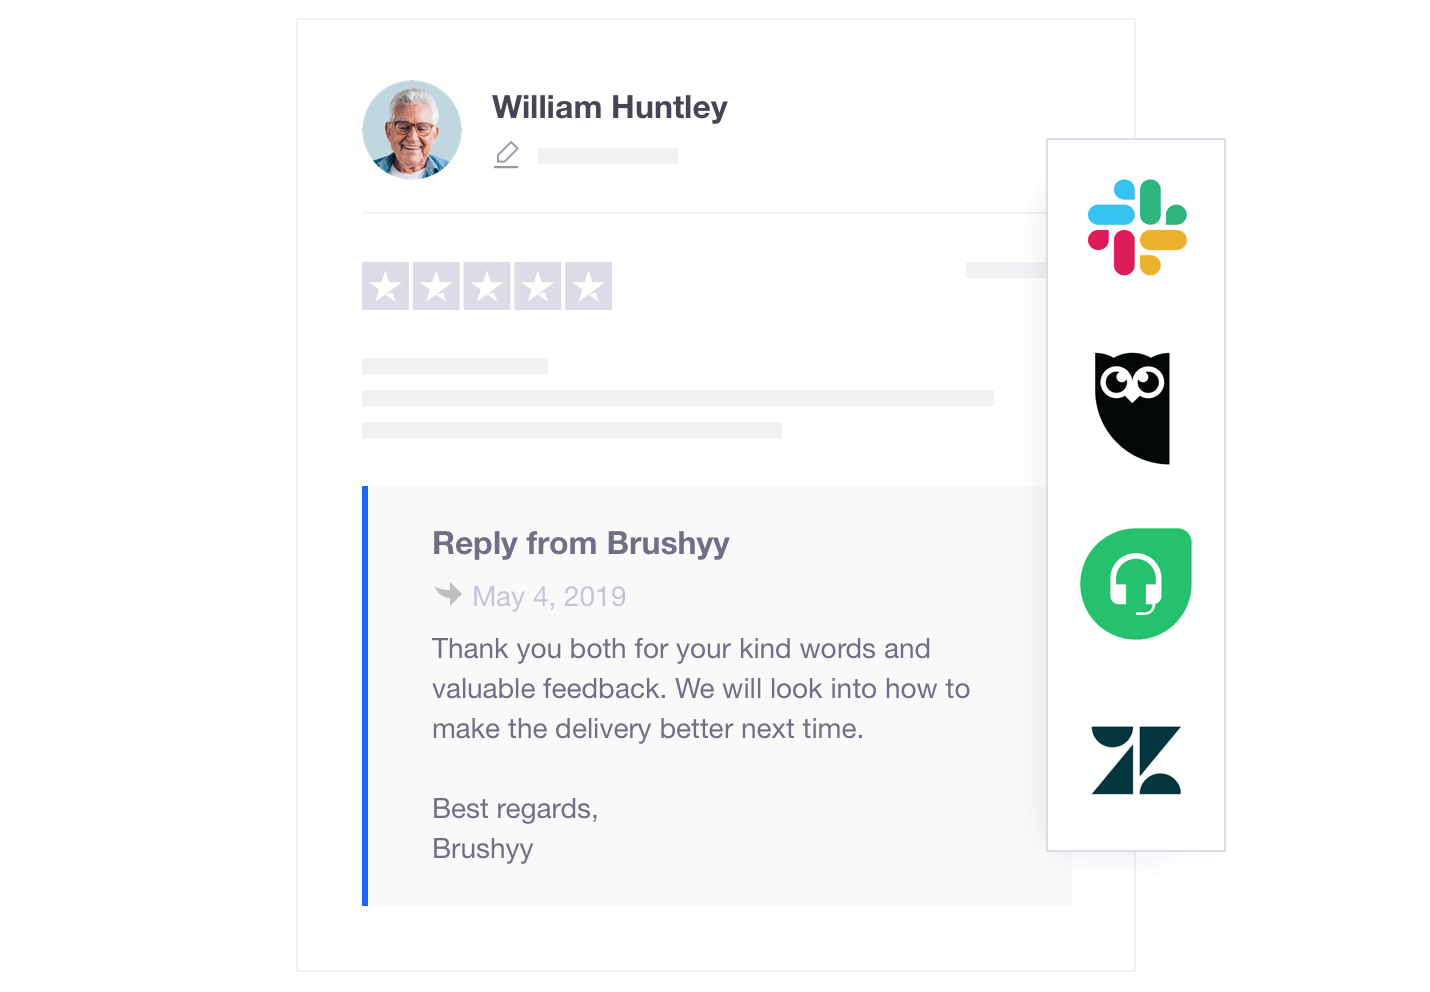 Trustpilot integrations with Zendesk, Hootsuite and Slack